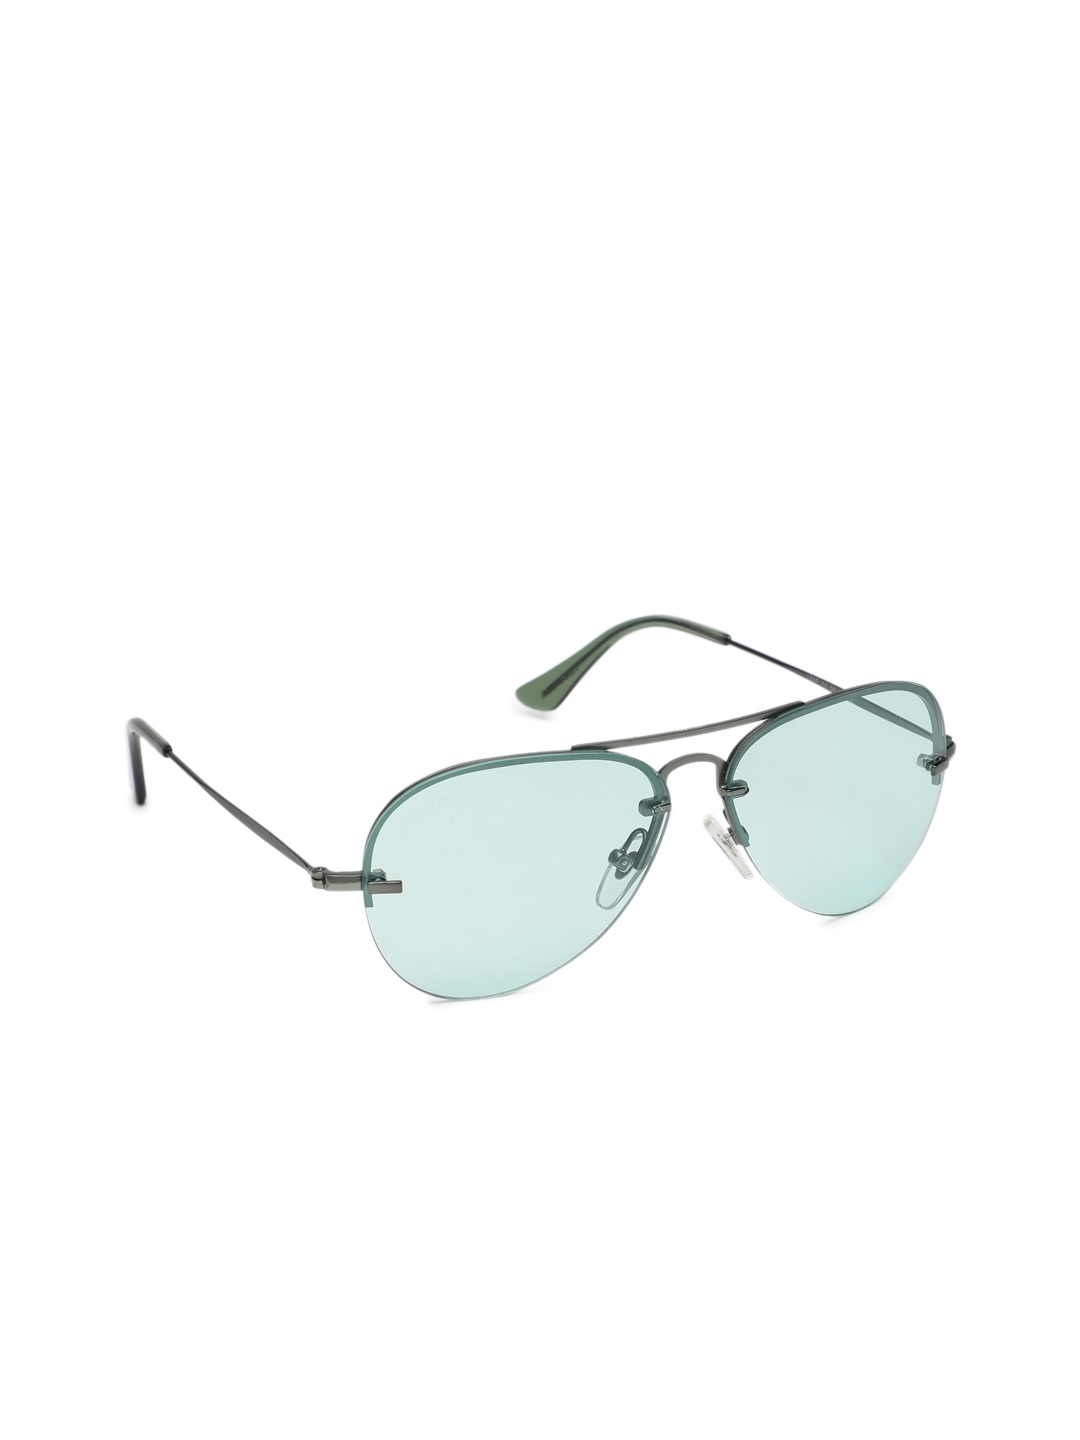 ae61325952 Buy Fastrack Men Aviator Sunglasses M205GR3 - Sunglasses for Men ...